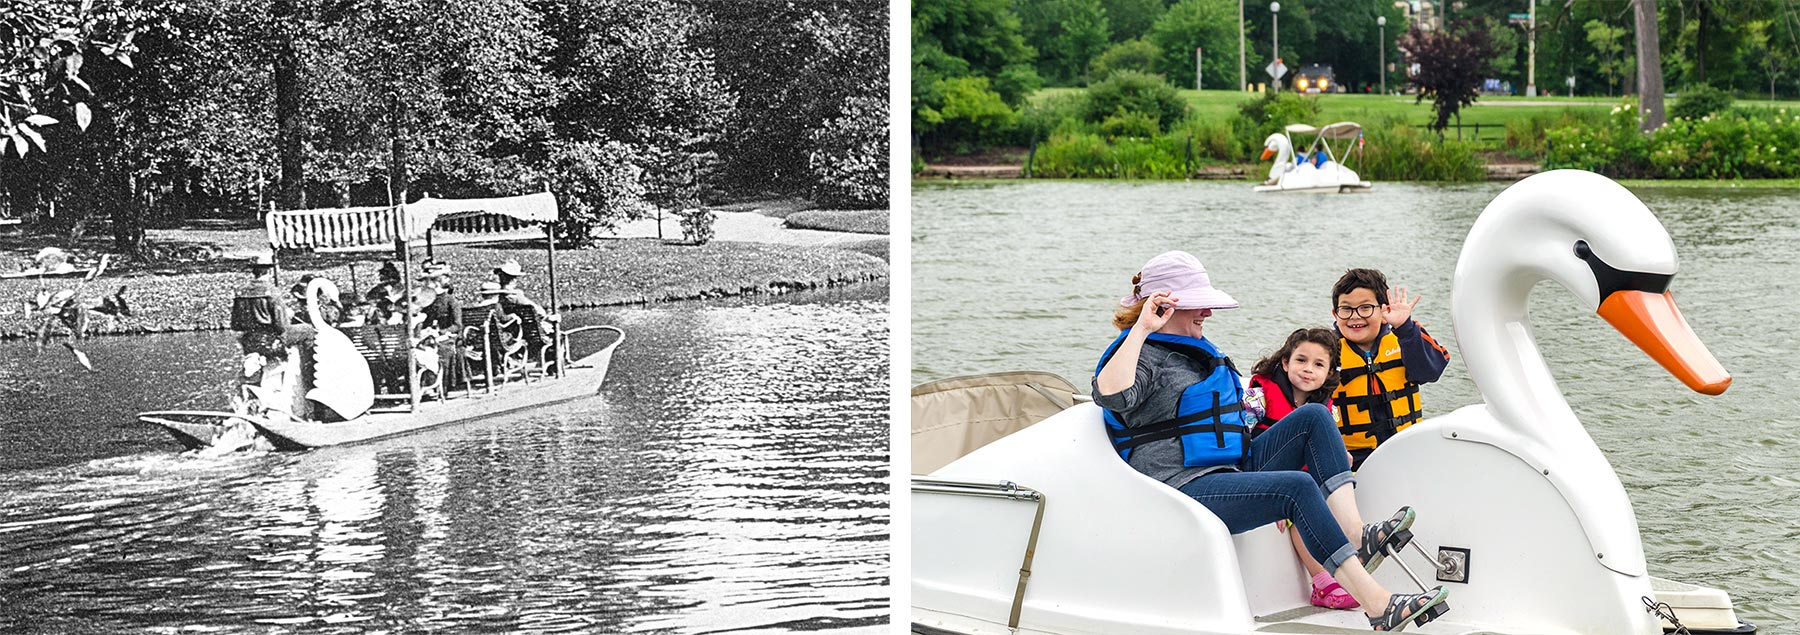 Left:Swan boat in Lincoln Park, ca. 1890. Chicago Park District Records: Photographs, Special Collections, Chicago Public Library.Right: Swan shaped paddle boats are now available in Humboldt Park. Photo by Eric Allix Rogers.